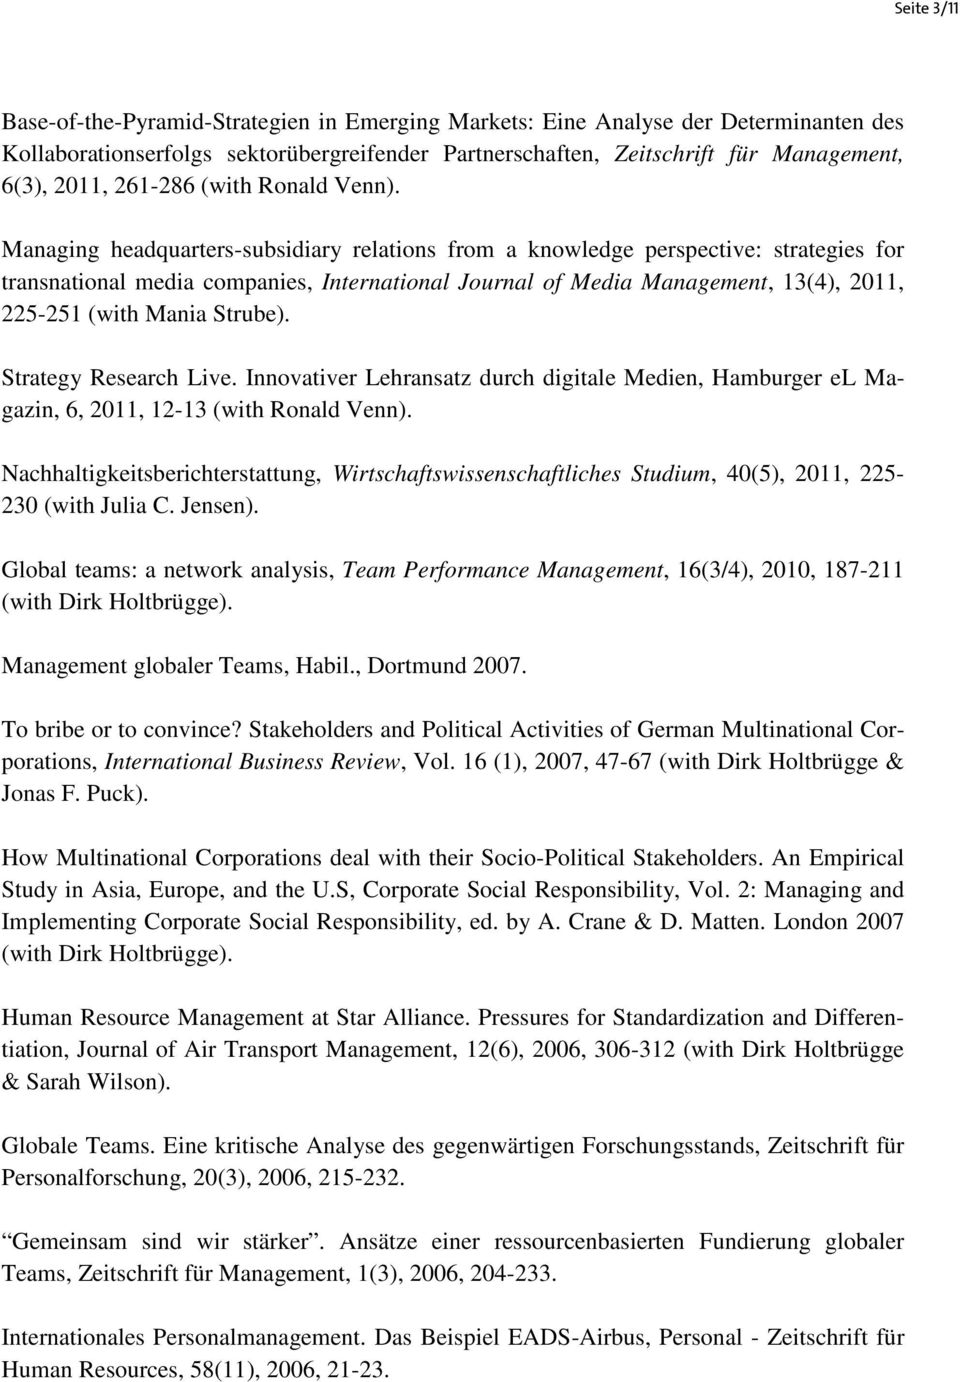 Managing headquarters-subsidiary relations from a knowledge perspective: strategies for transnational media companies, International Journal of Media Management, 13(4), 2011, 225-251 (with Mania